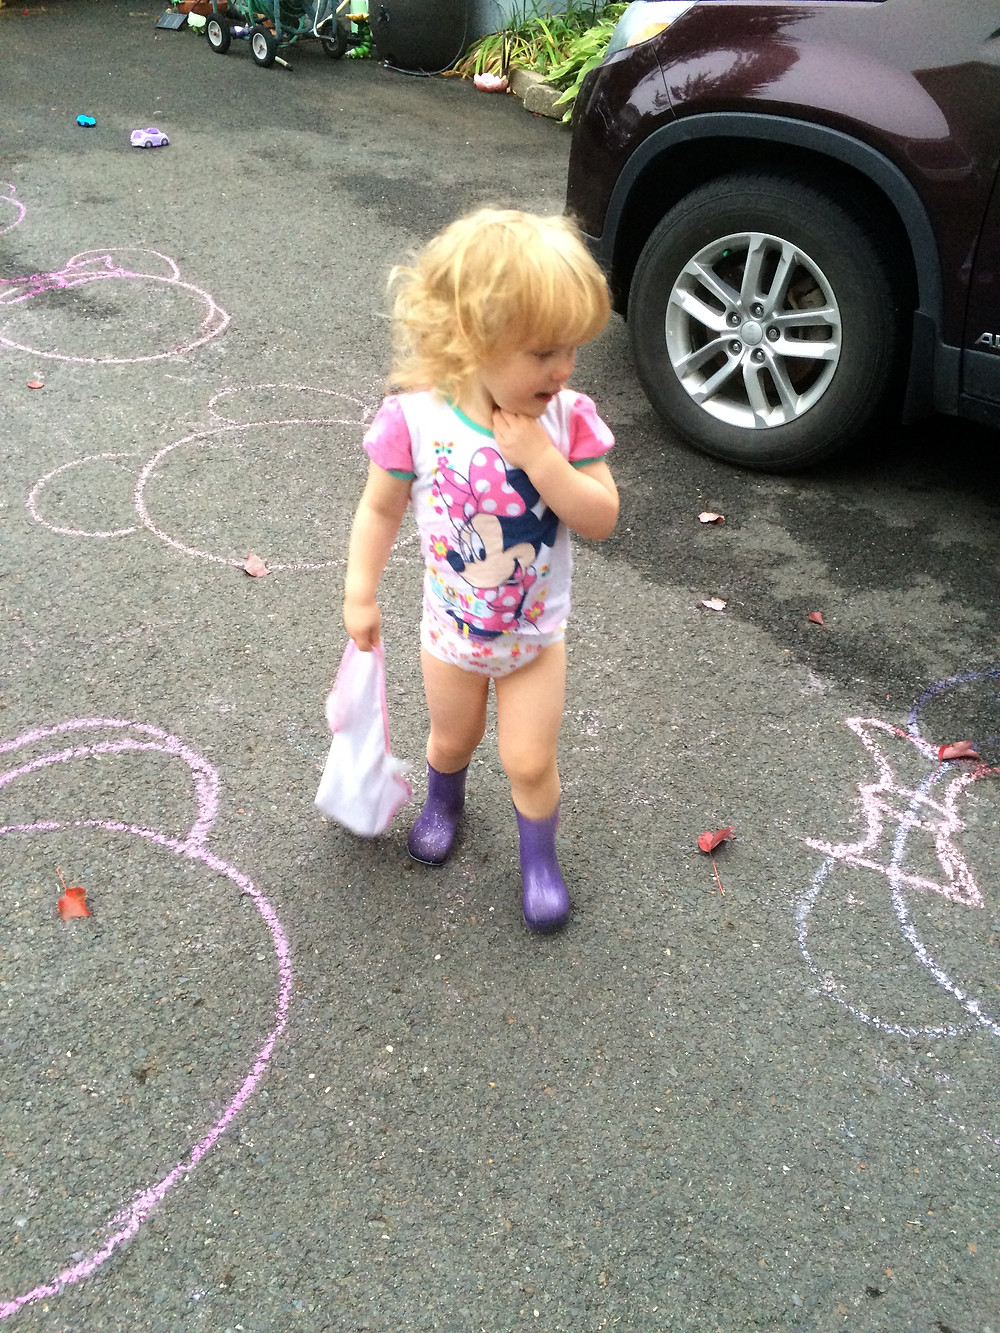 Admiring the Minnie mouse chalk in the driveway